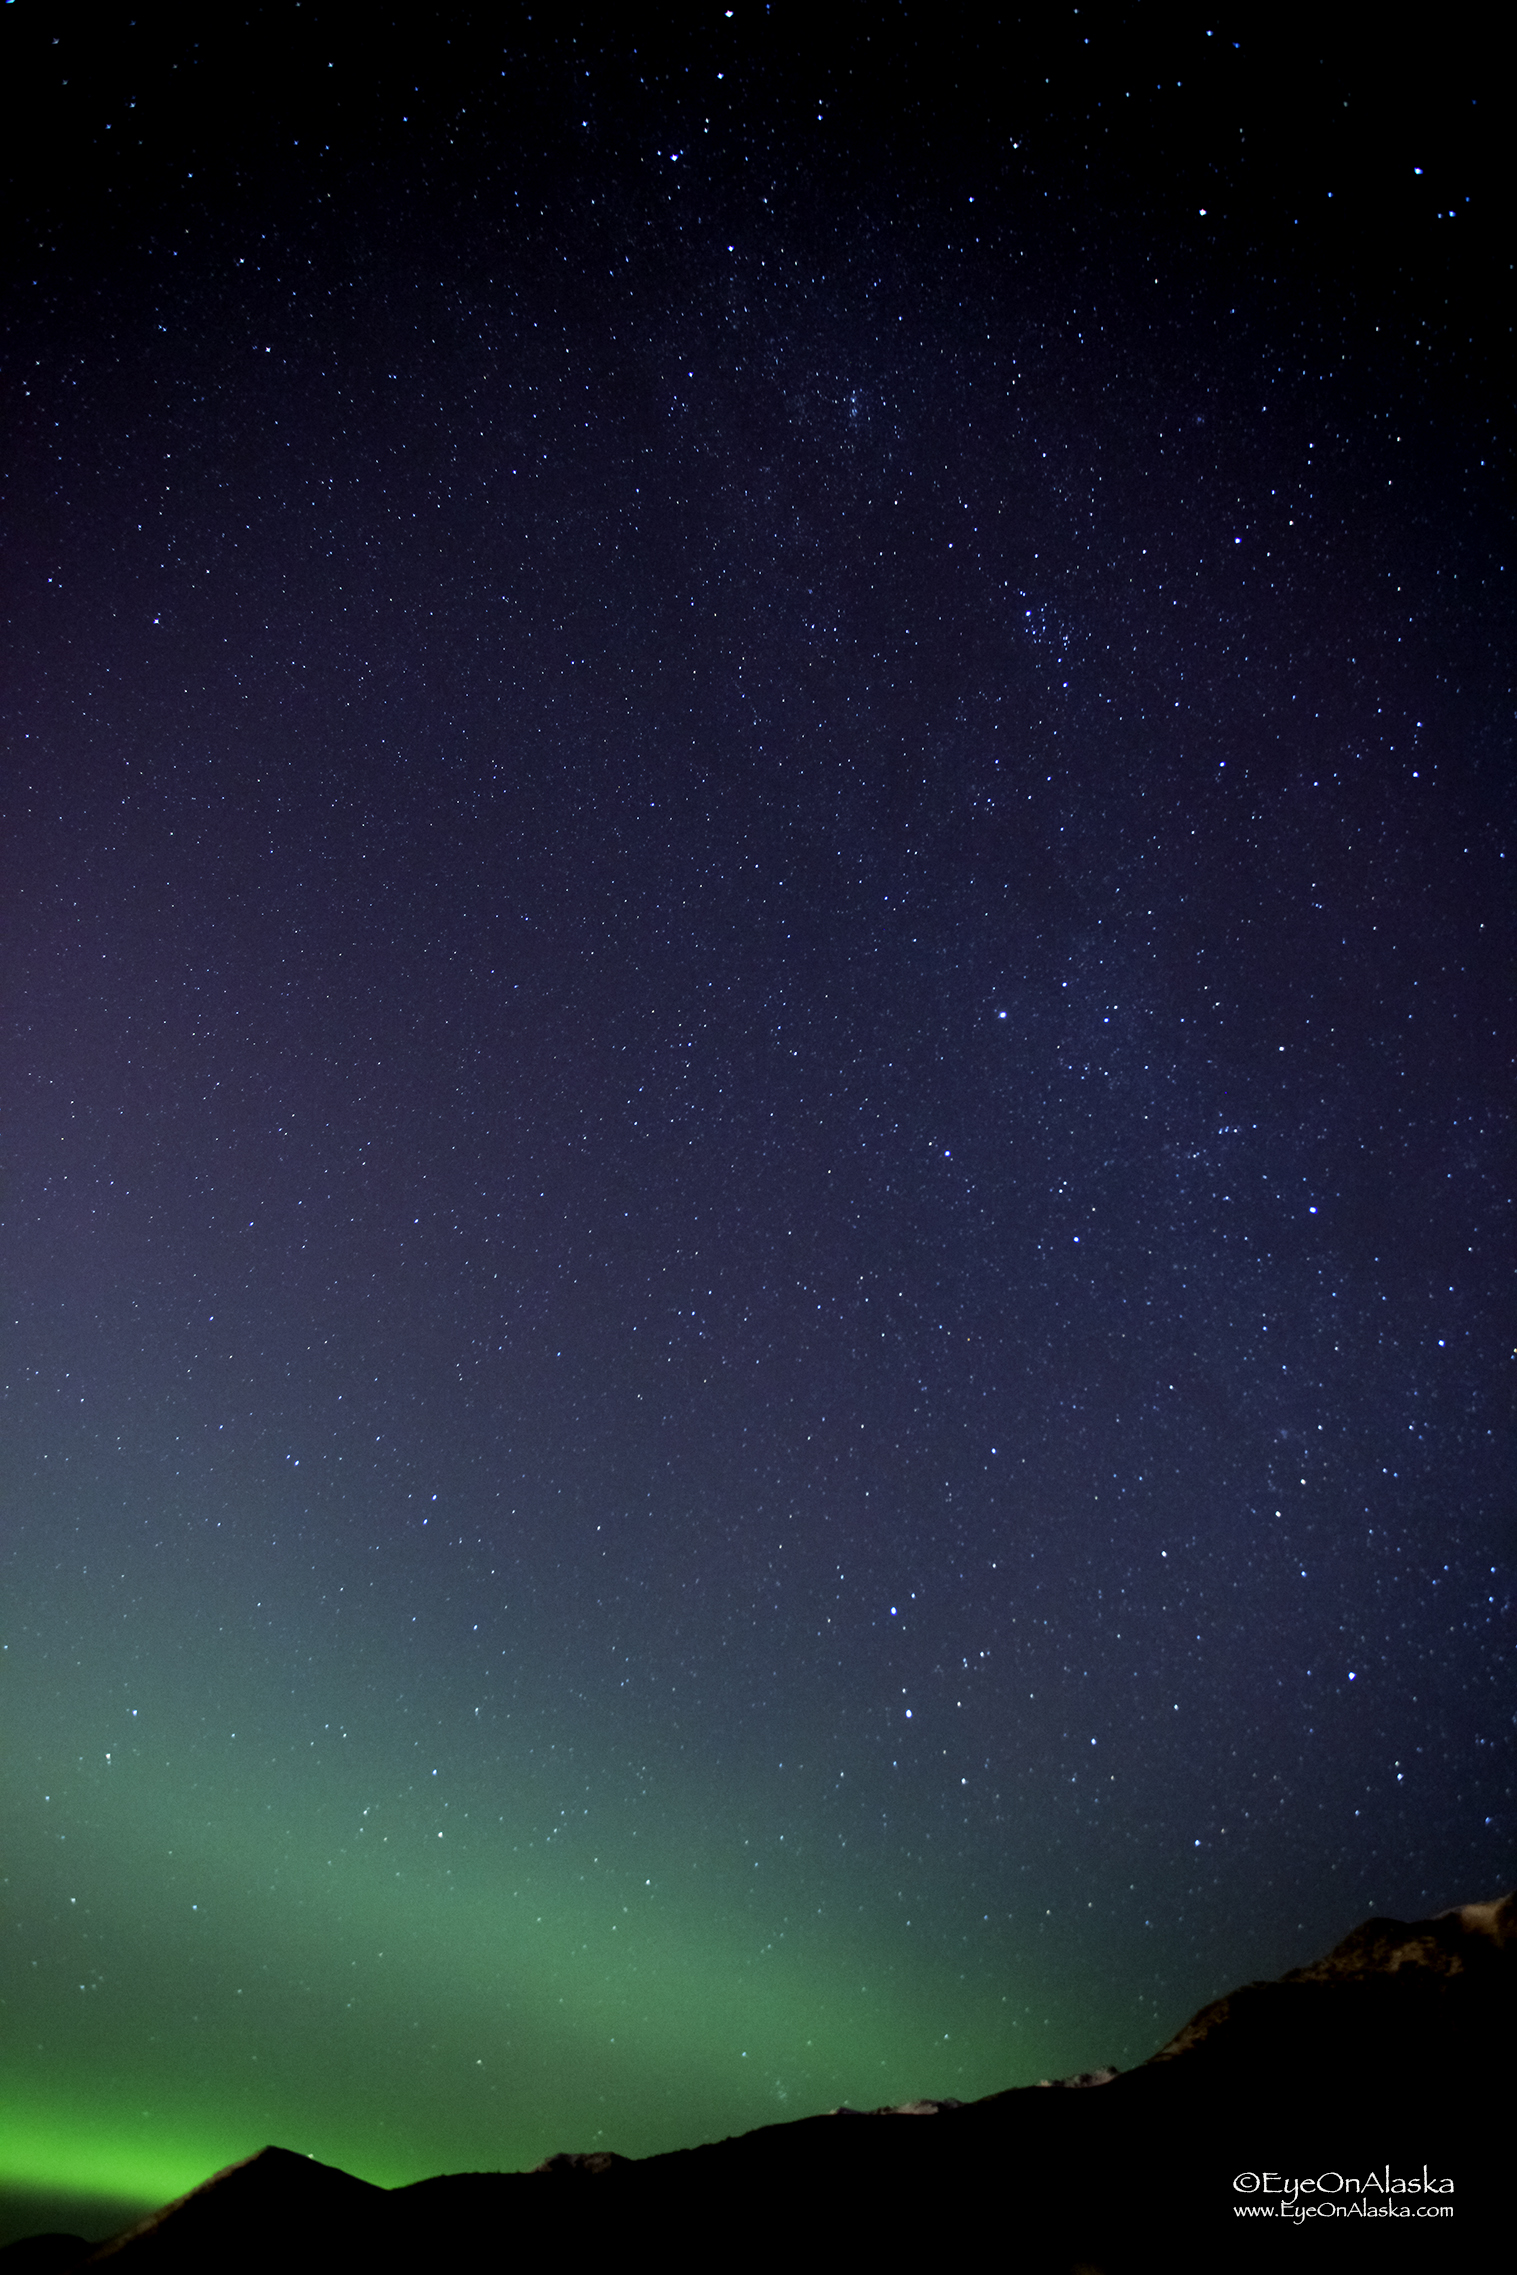 The Milky Way was very bright again tonight.